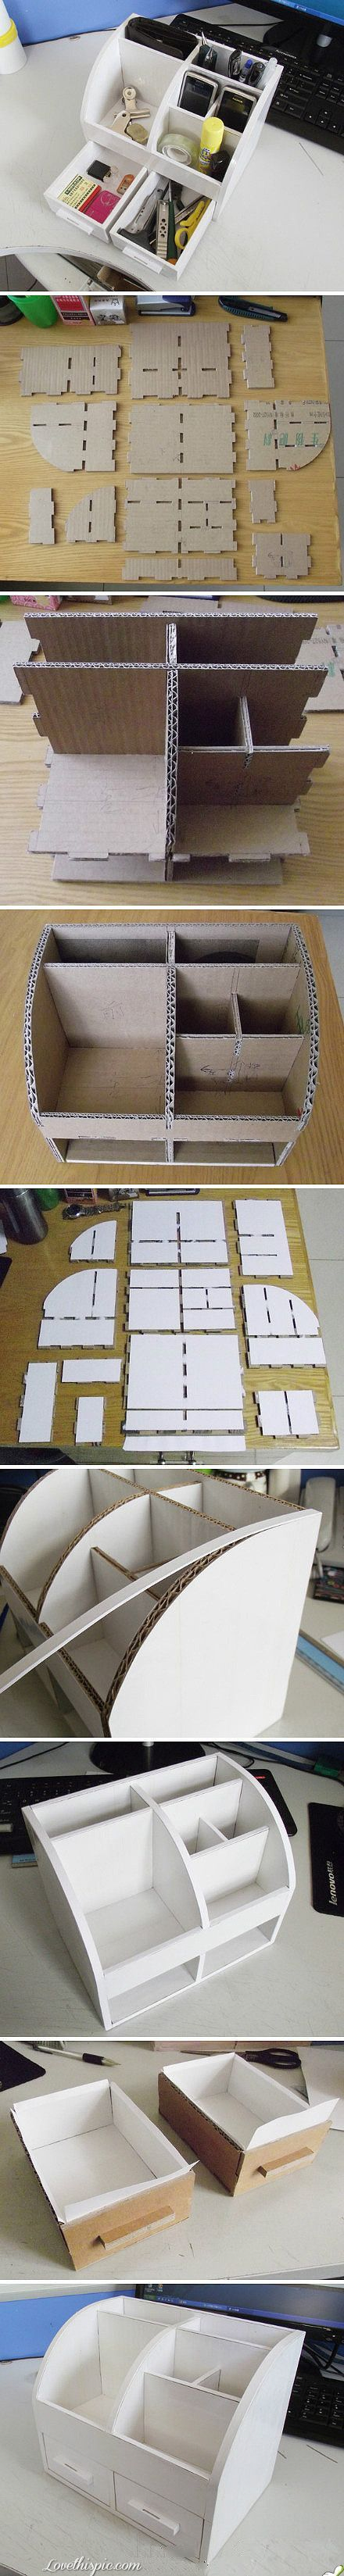 Brilliant Diy Cardboard Desk Organizer How To Desktop And Design Inspiration